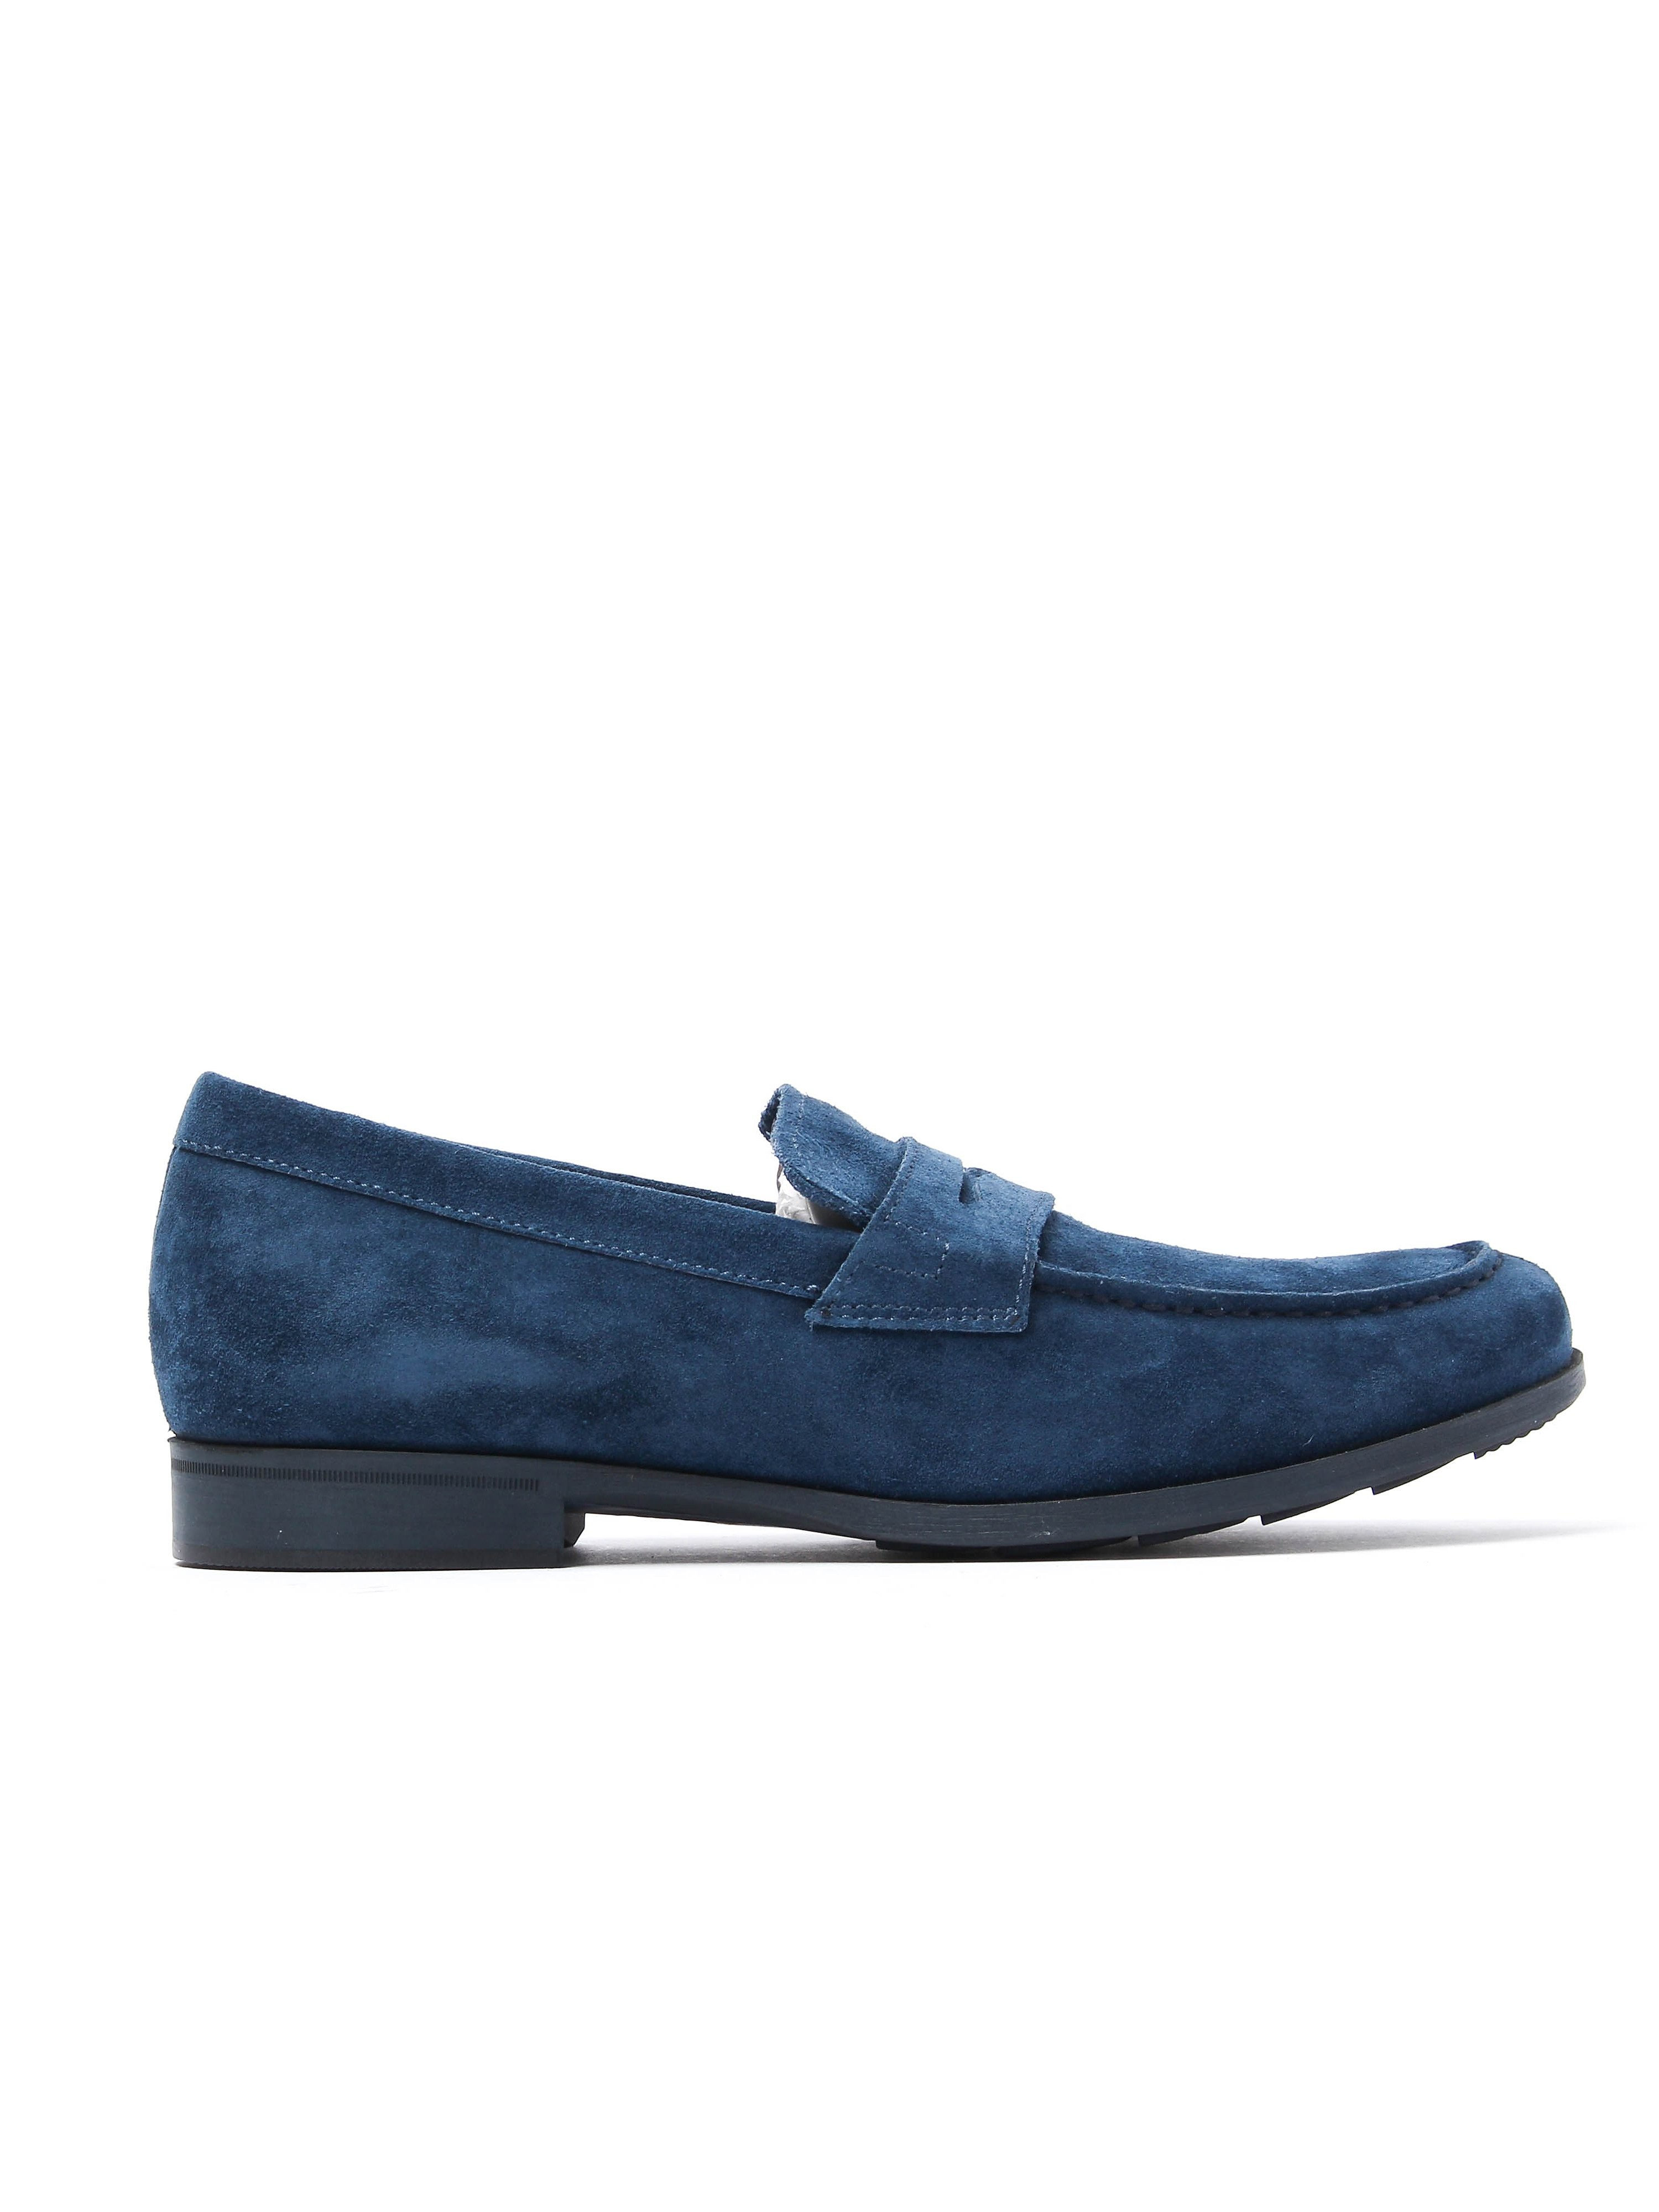 Geox Men's U Besmington Loafers - Ocean Suede